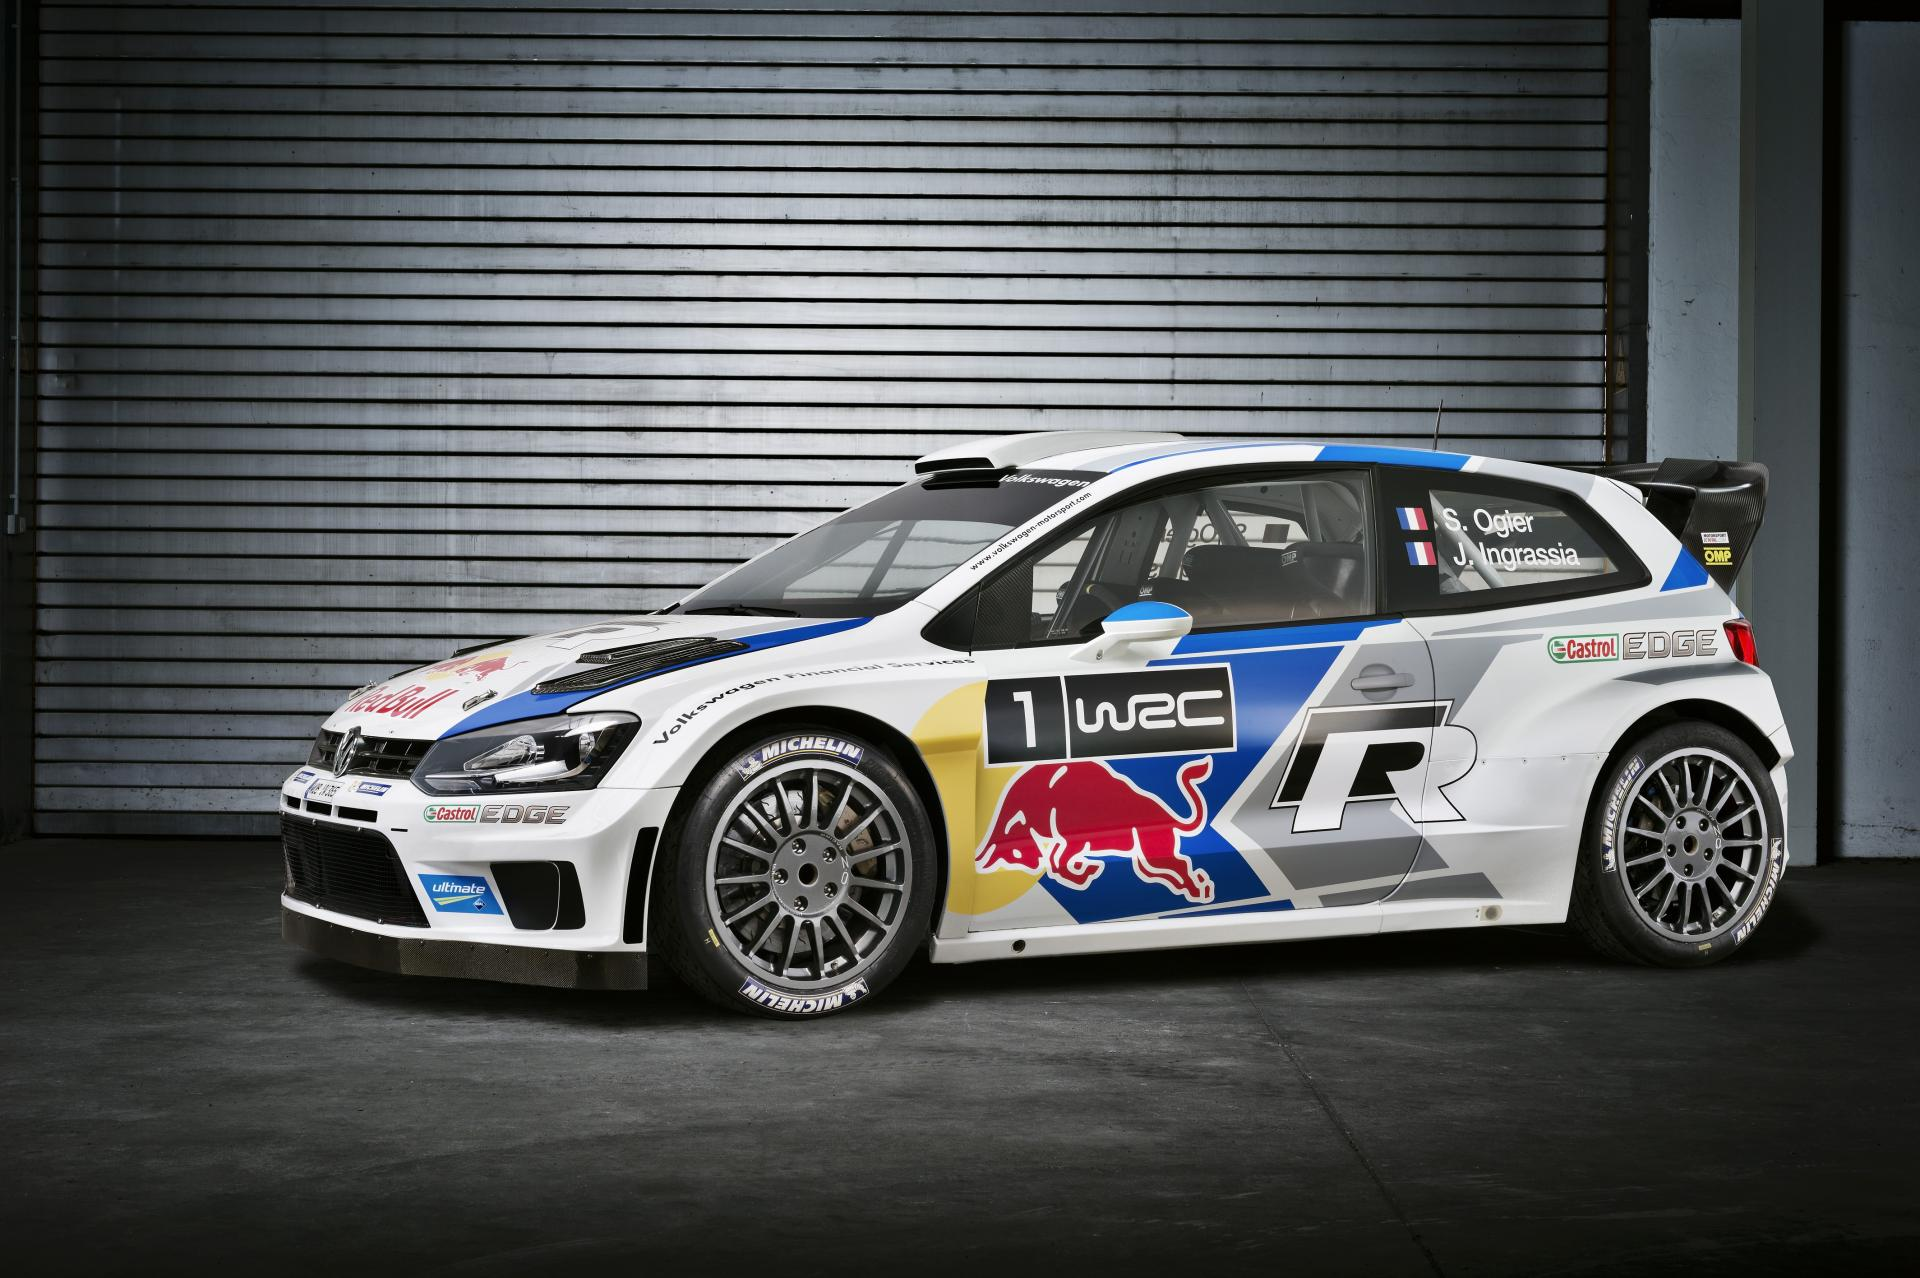 2014 volkswagen polo r wrc. Black Bedroom Furniture Sets. Home Design Ideas